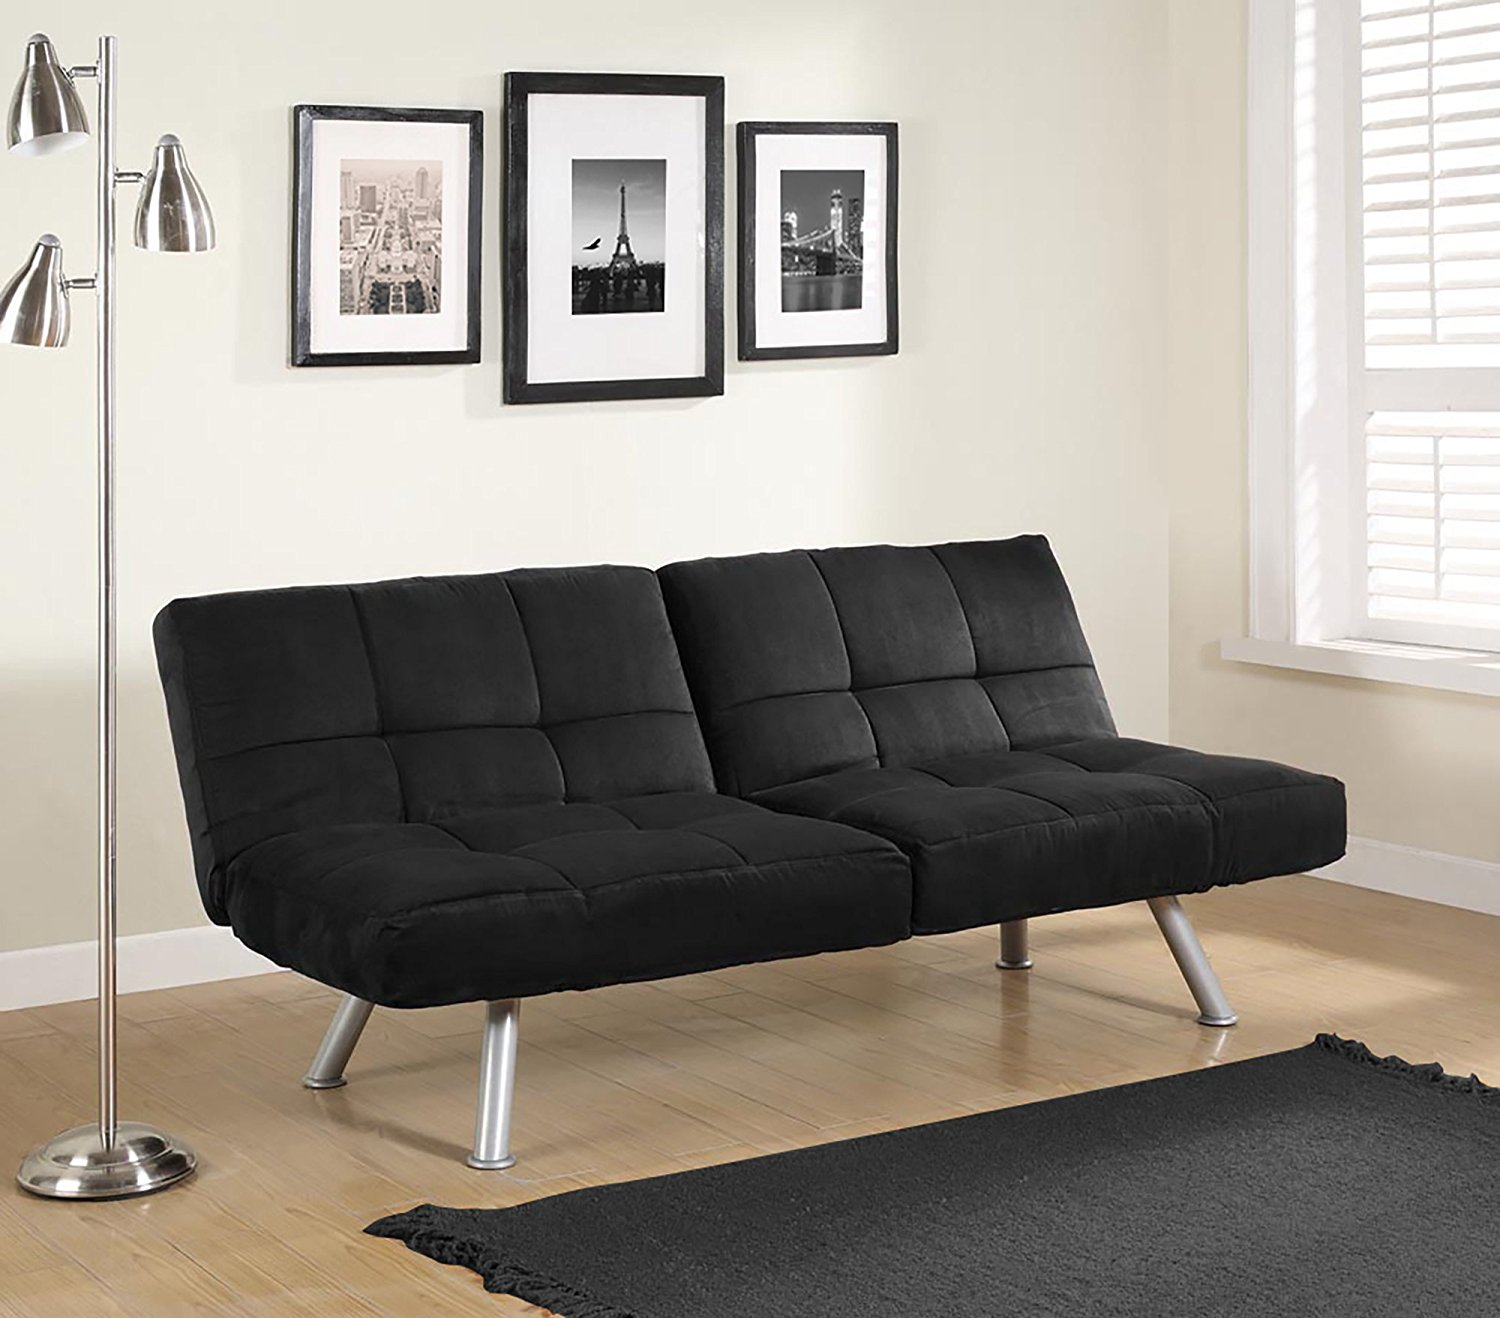 suede rated furniture gel futons mozaic pocket coil pdx and wayfair mattress company reviews top futon